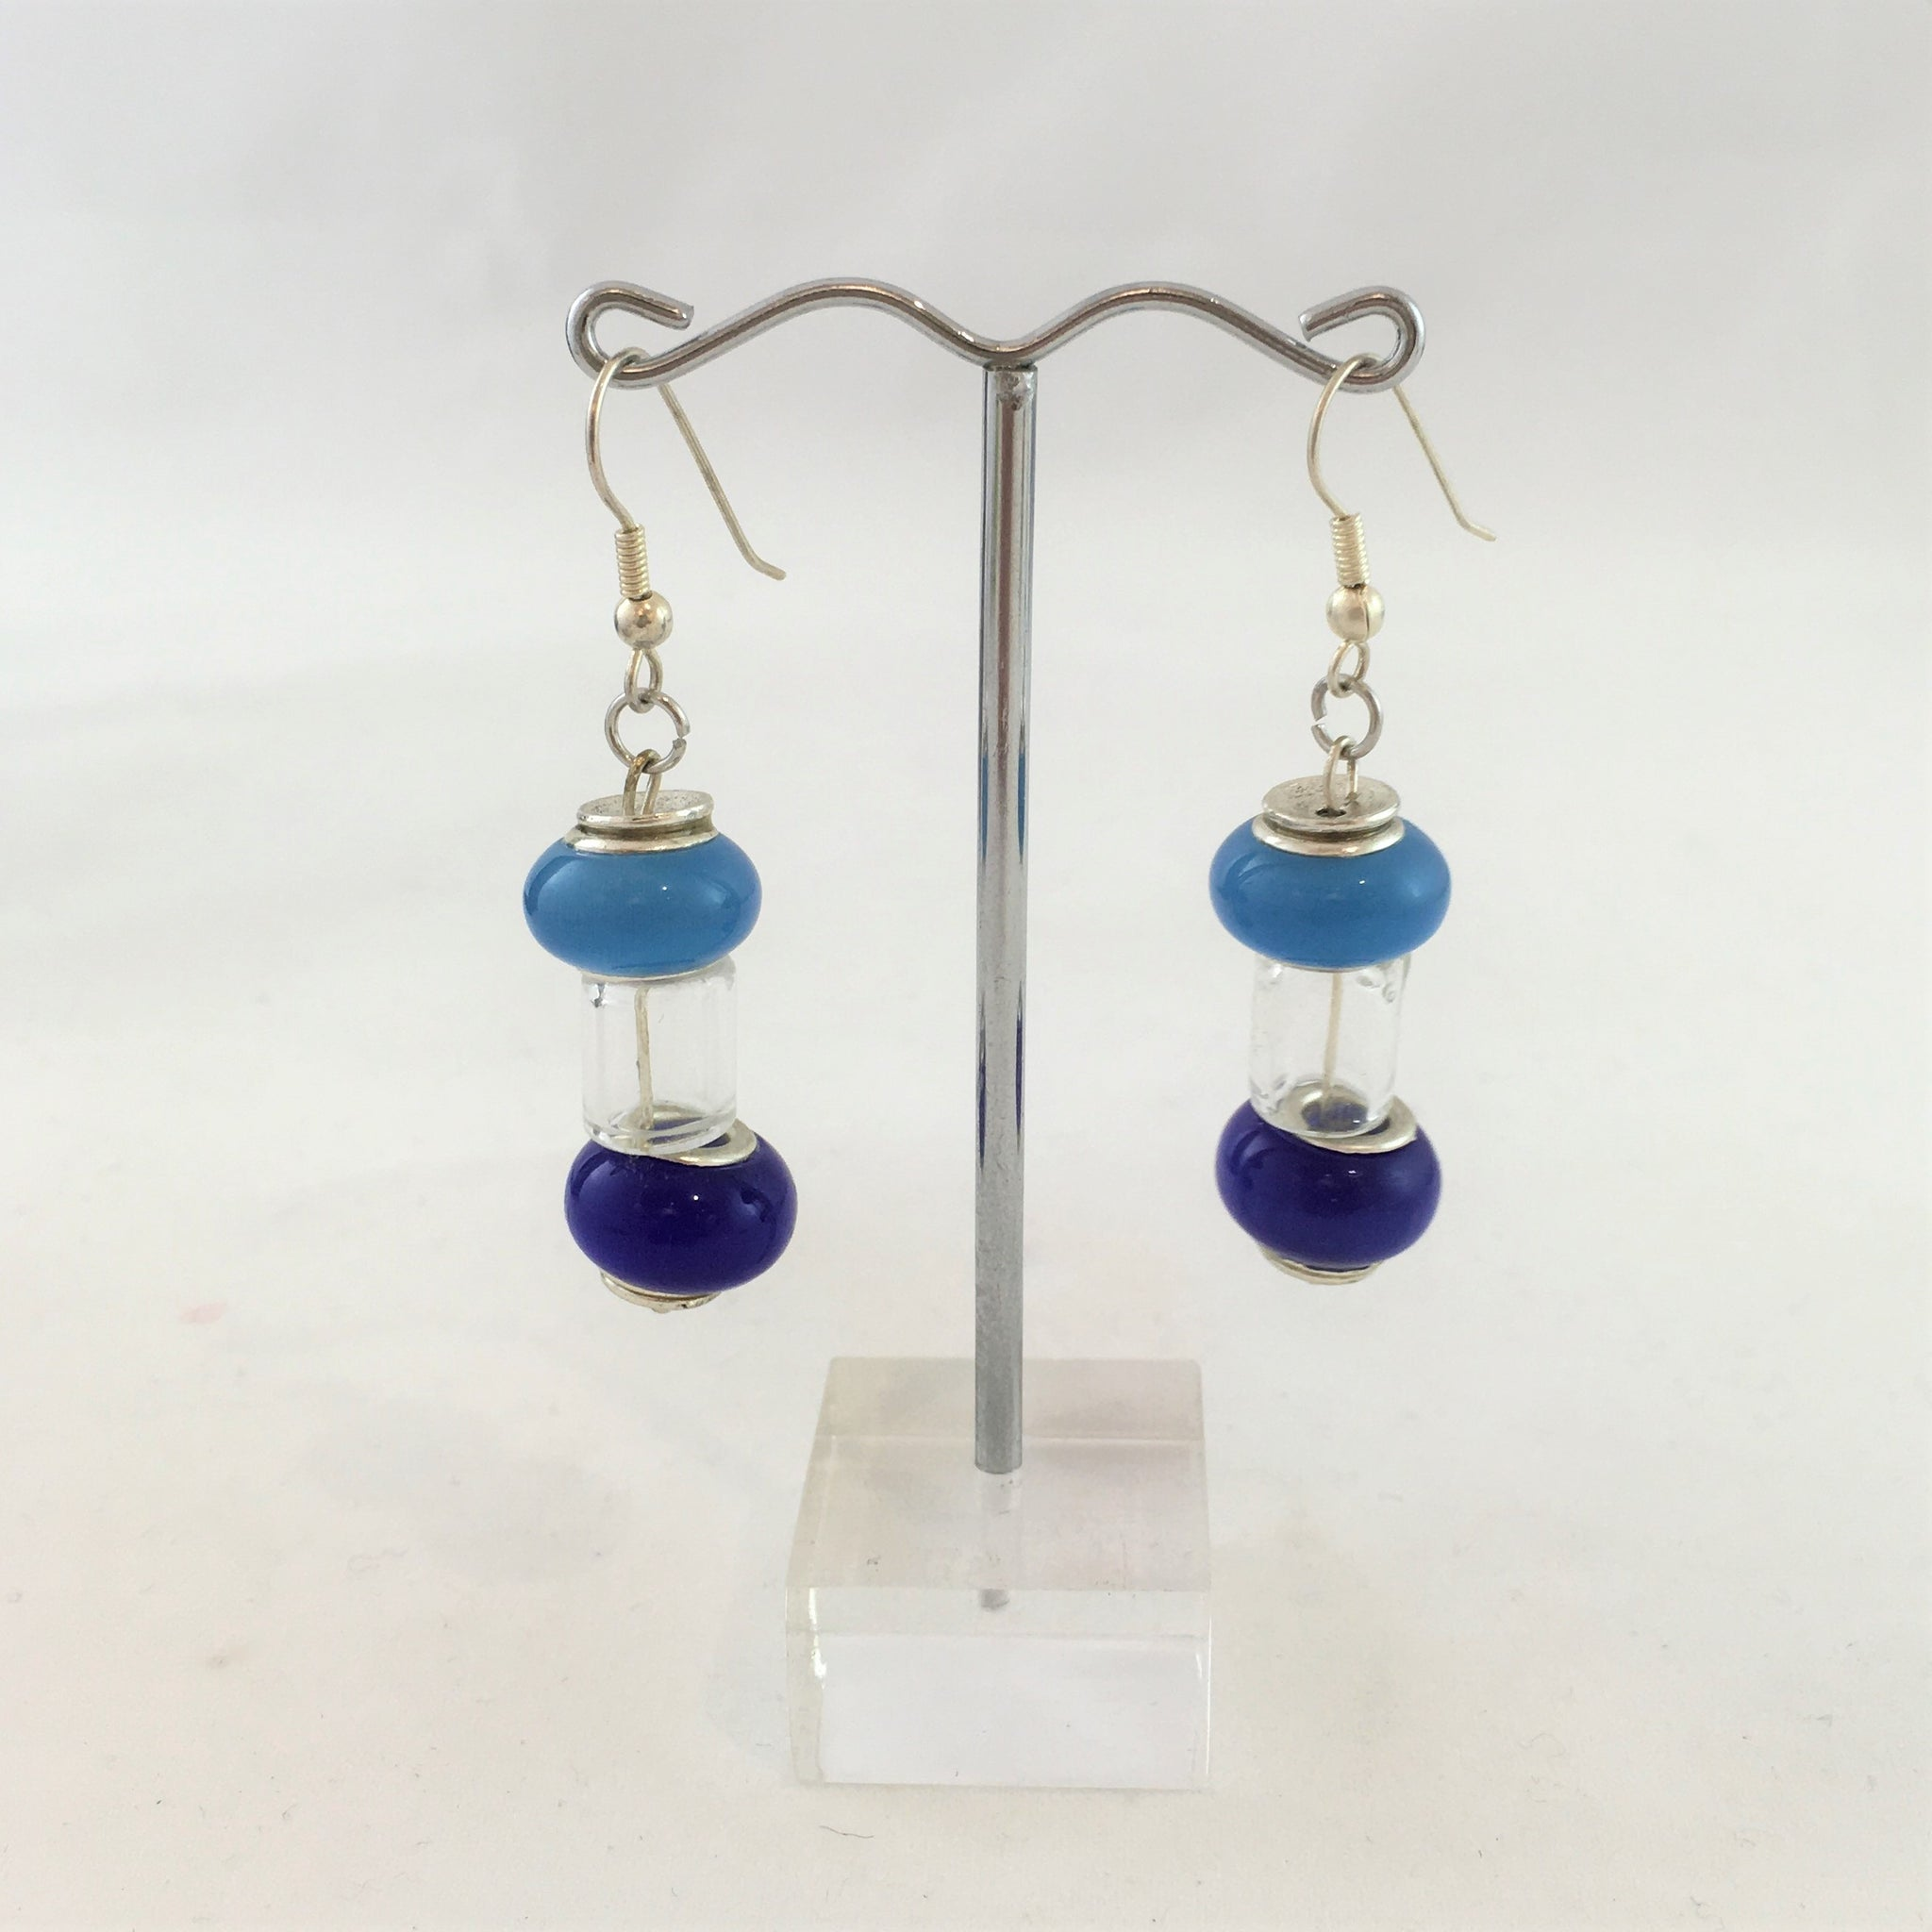 Glass earrings at Craft NSW